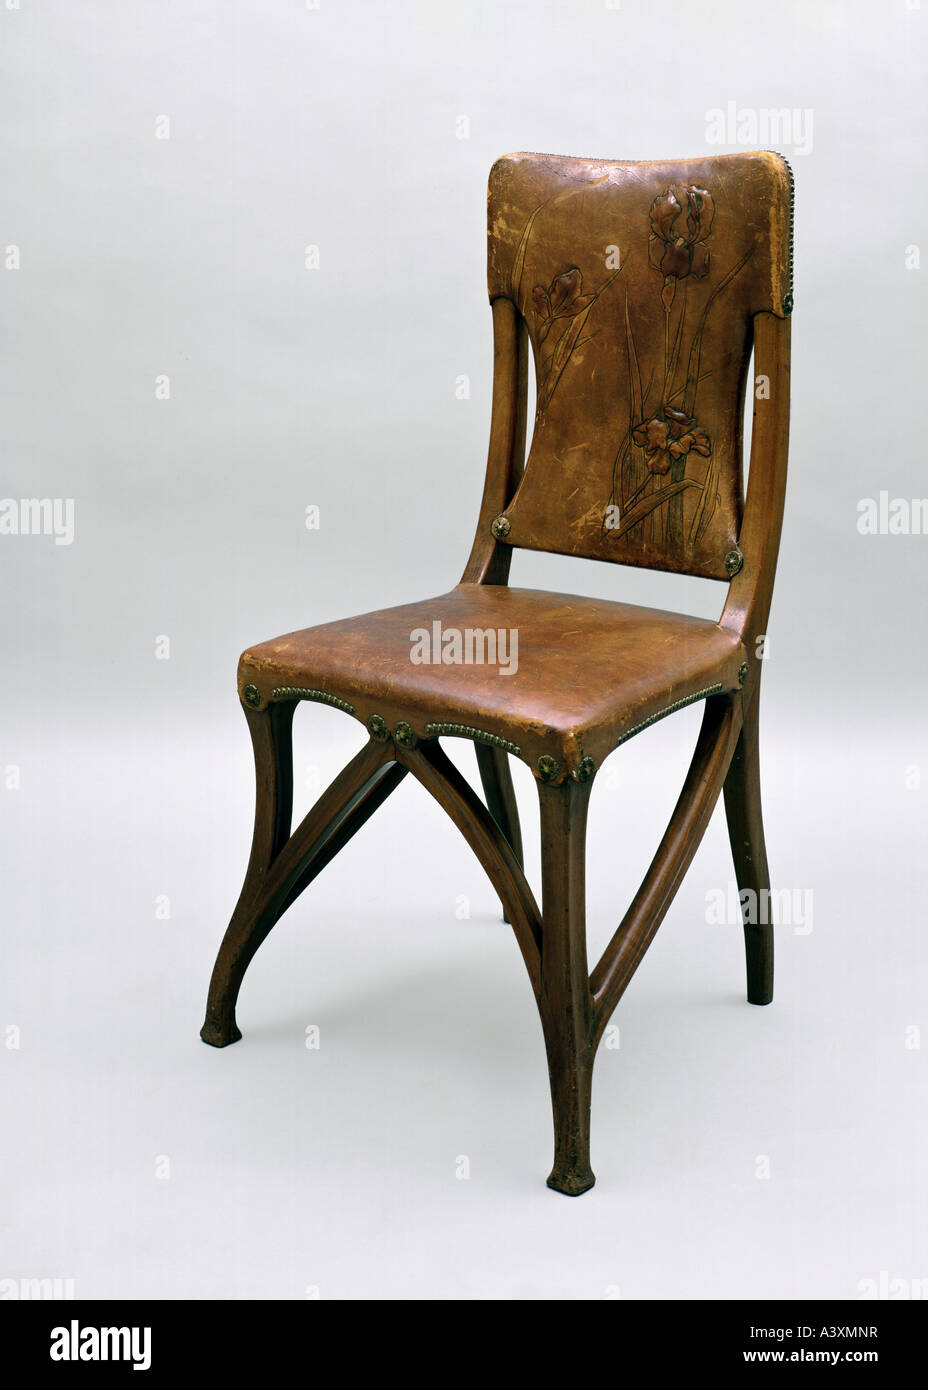 Art Nouveau Möbel Art Nouveau Furniture Stock Photos Art Nouveau Furniture Stock